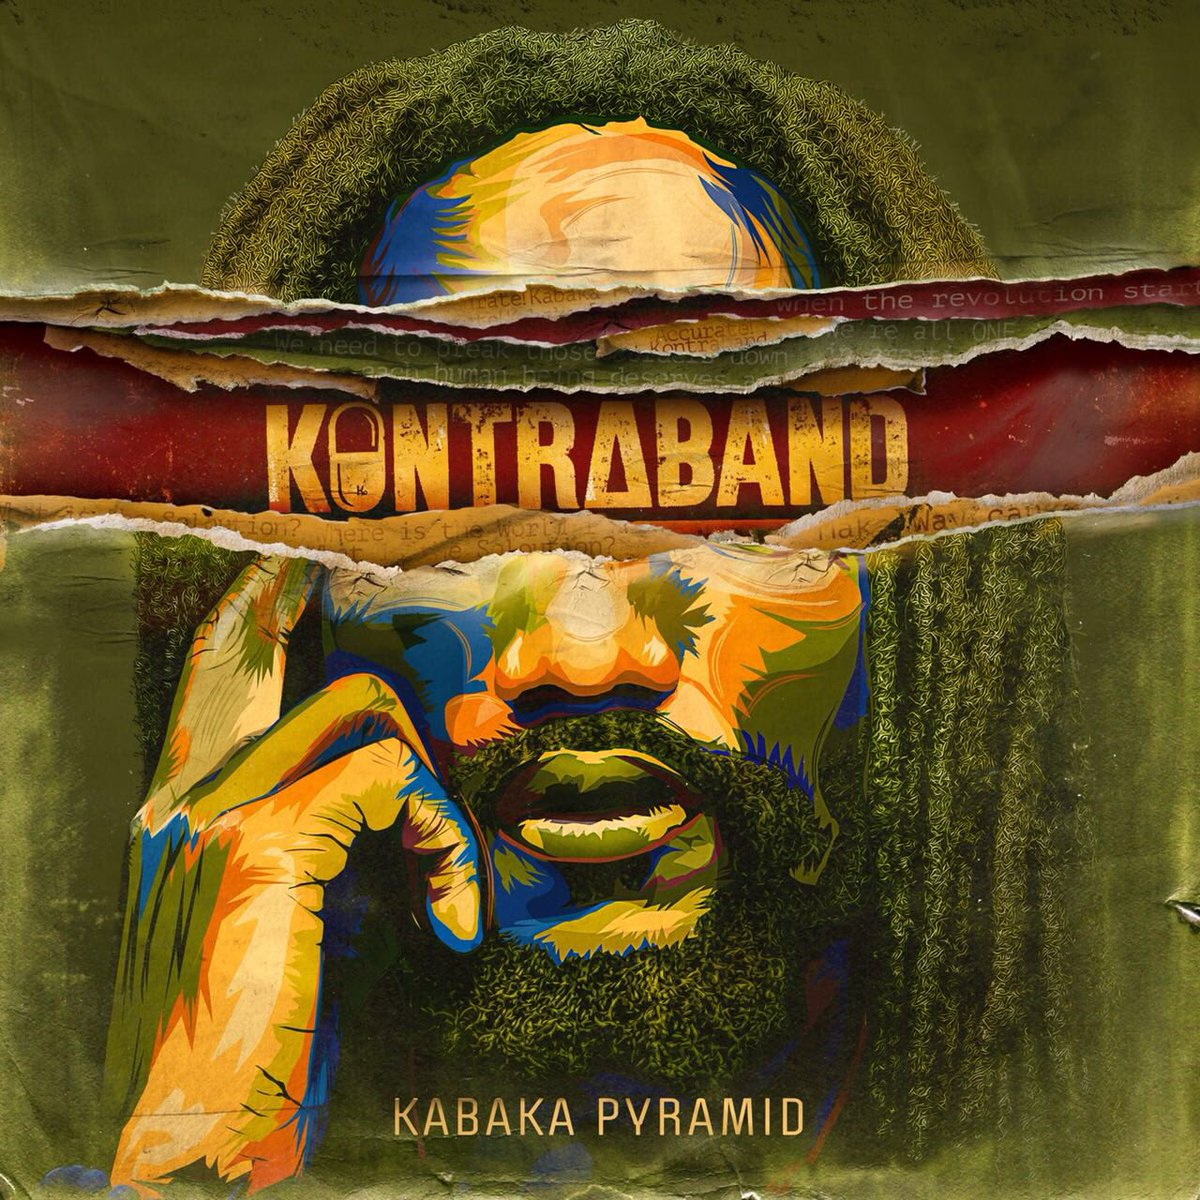 Kabaka Pyramid - Kontraband. DIGITAL RELEASE [Ghetto Youths International, Bebble Rock Records].